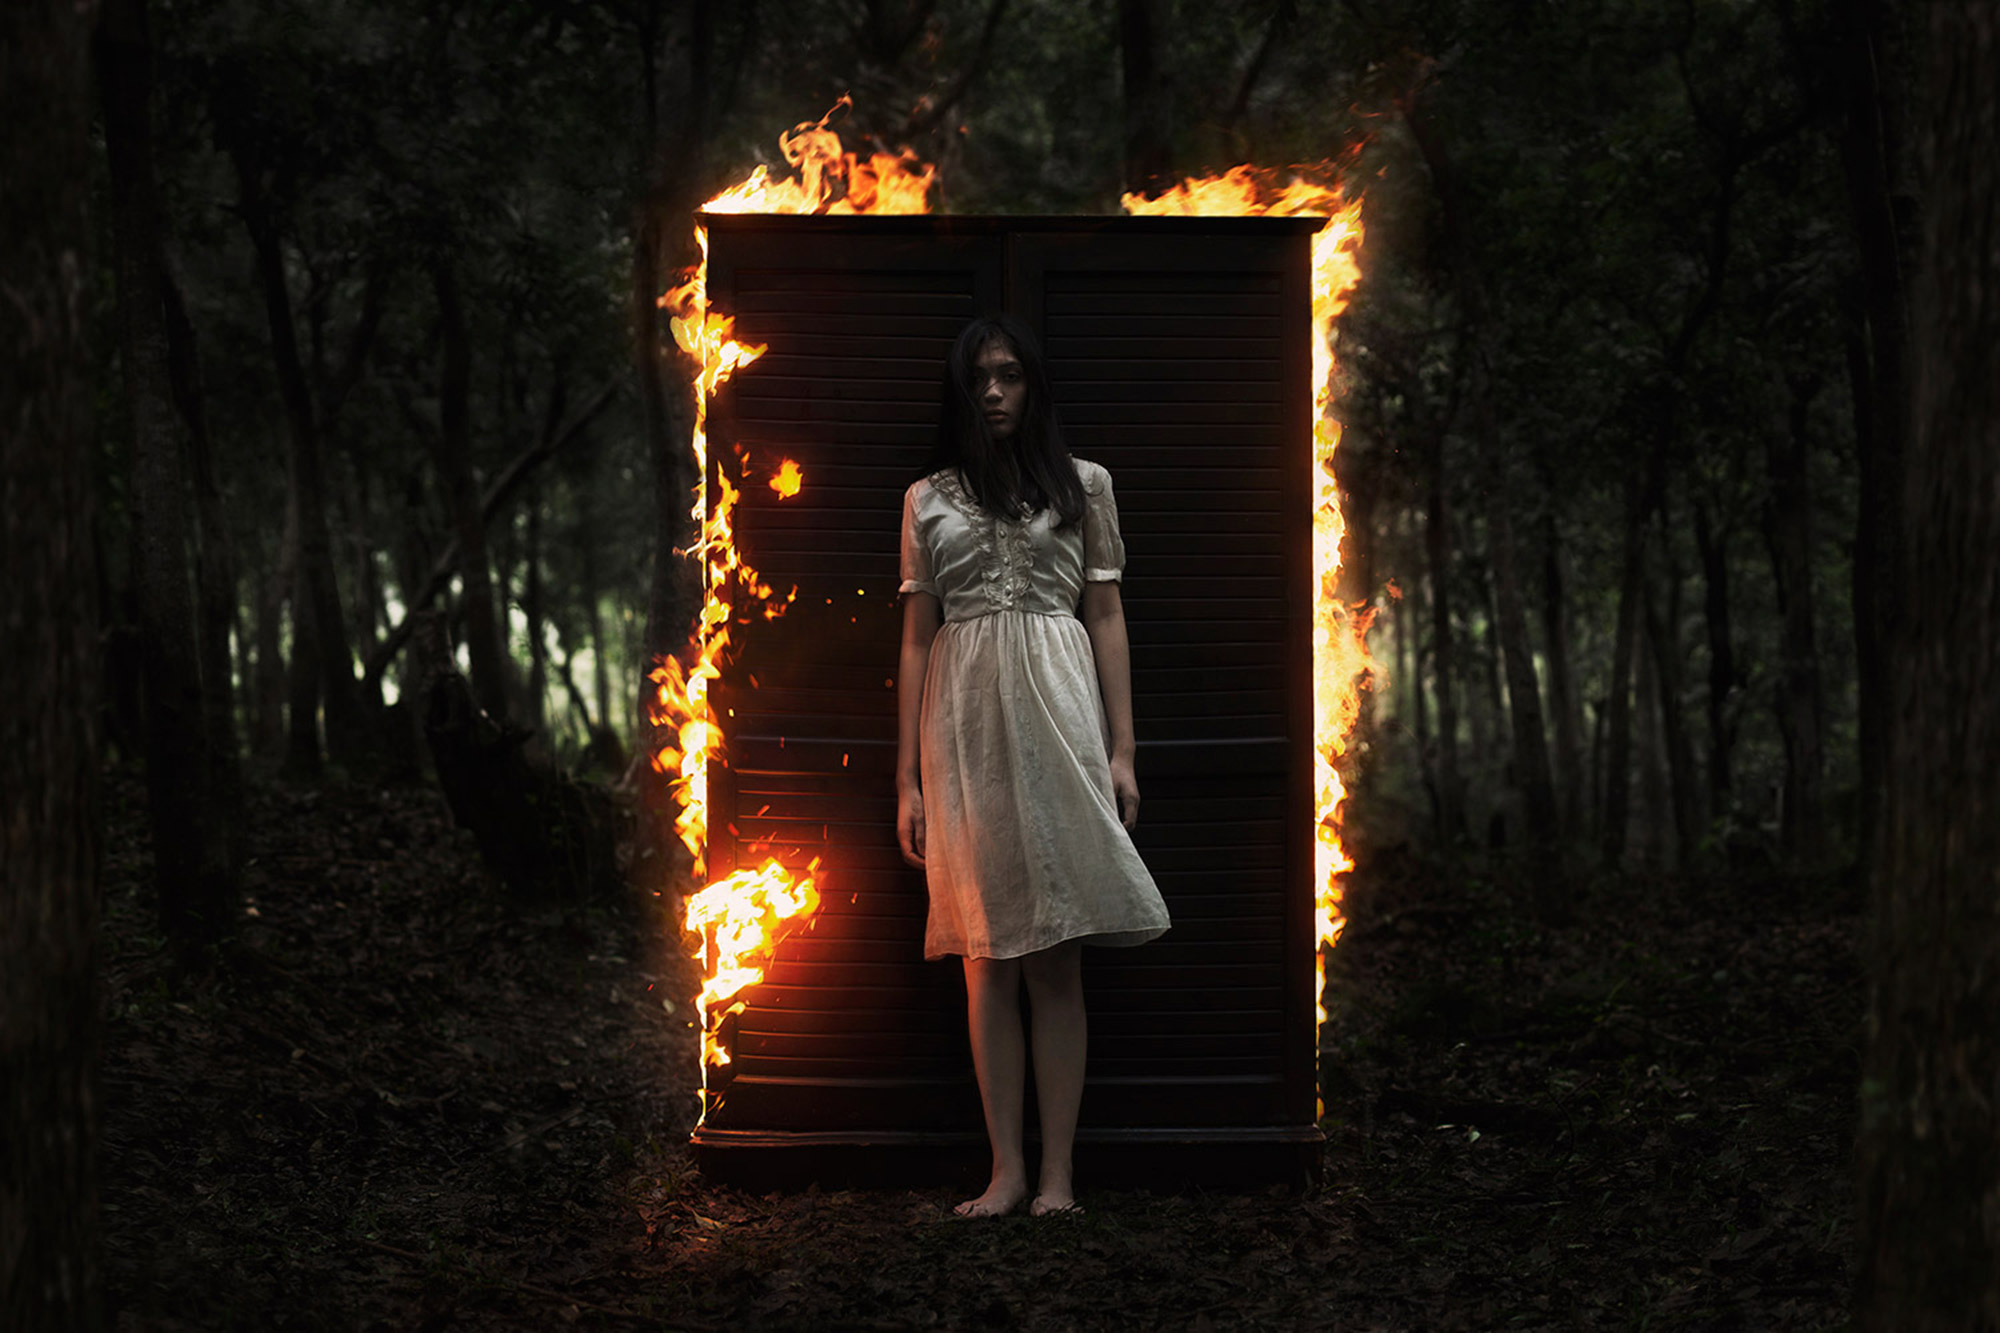 Mikael Aldo, fiery door, eerie woman